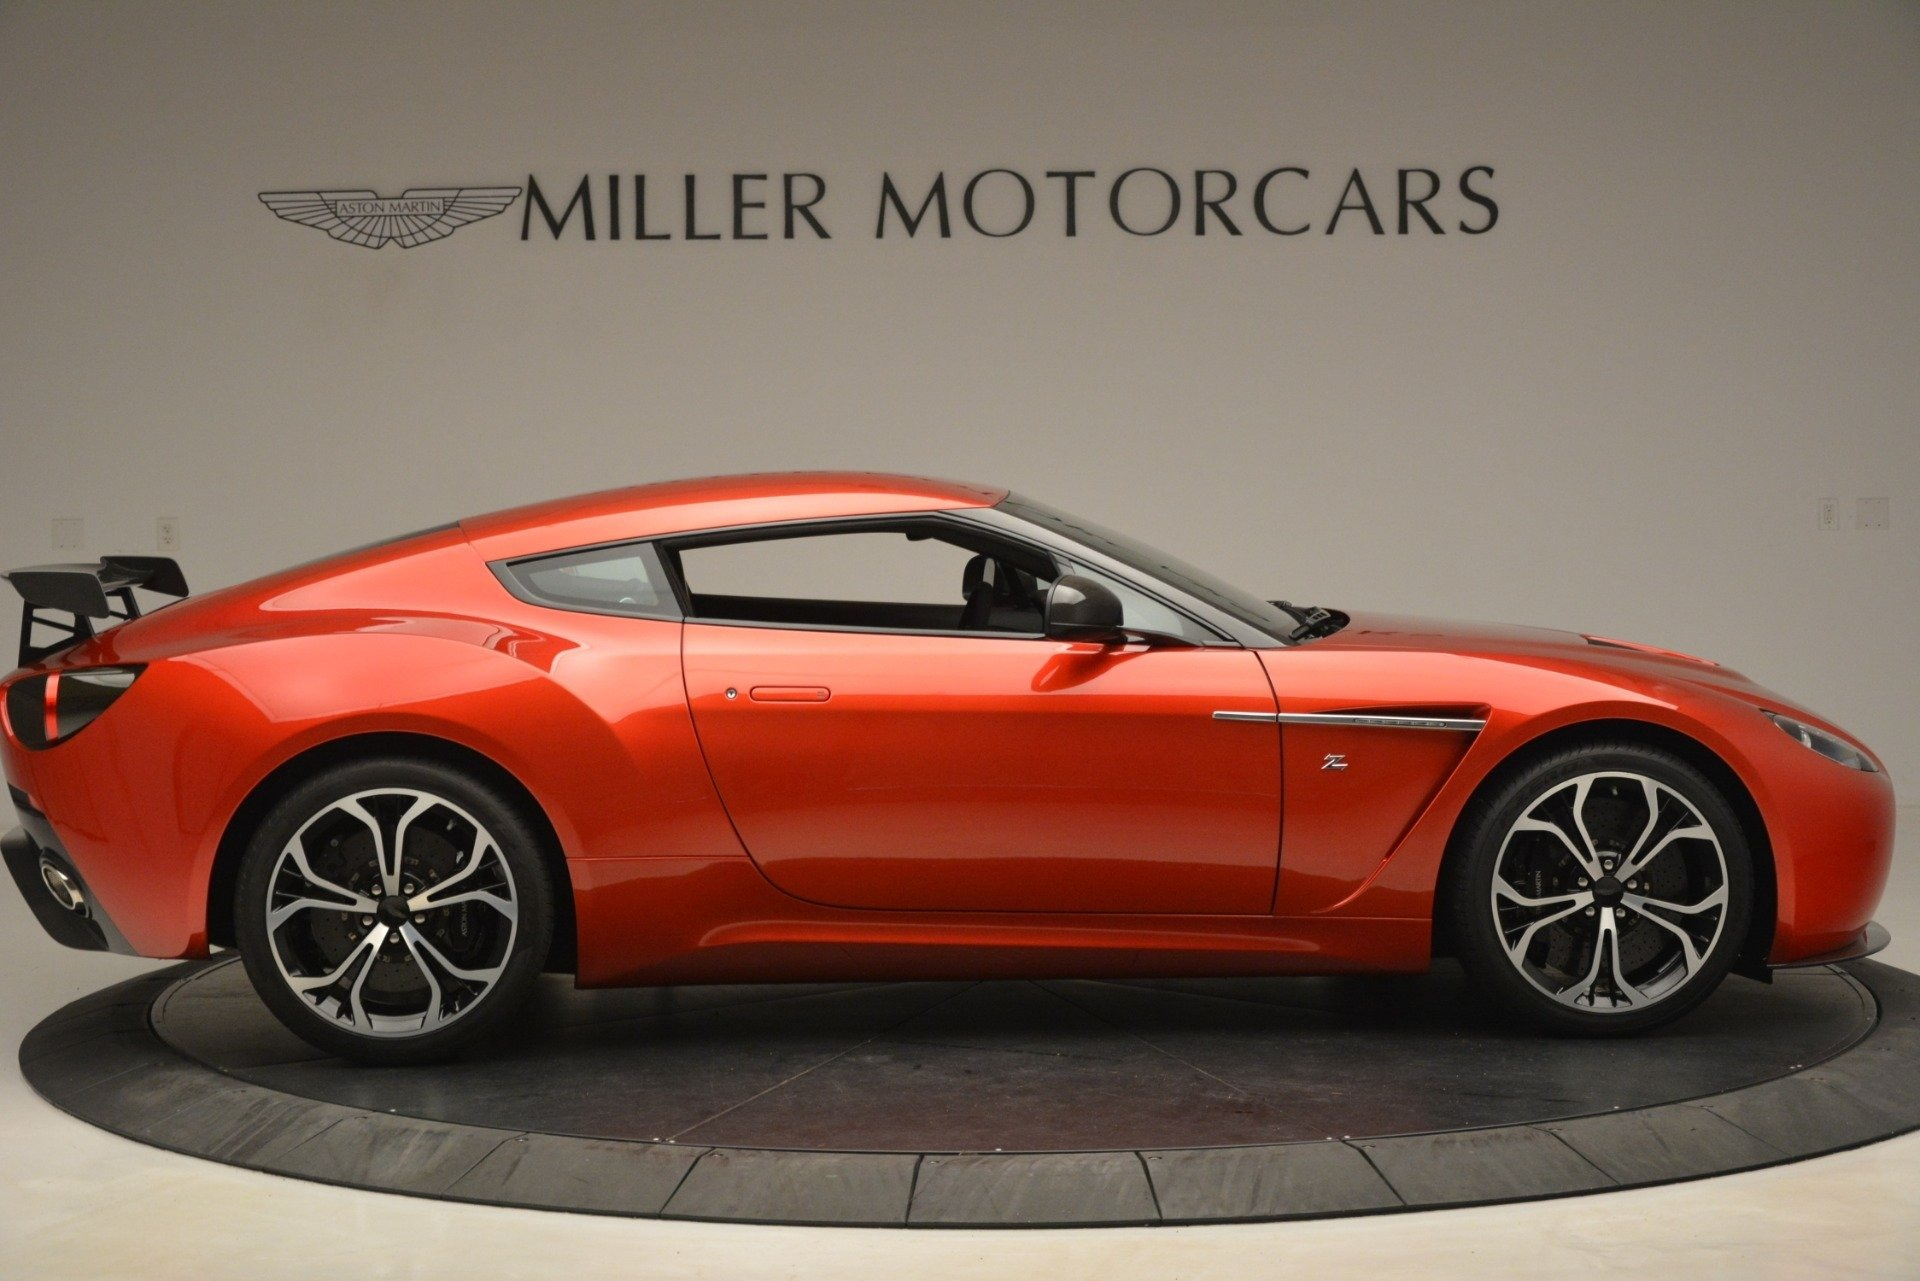 Used 2013 Aston Martin V12 Zagato Coupe For Sale In Greenwich, CT 3181_p7